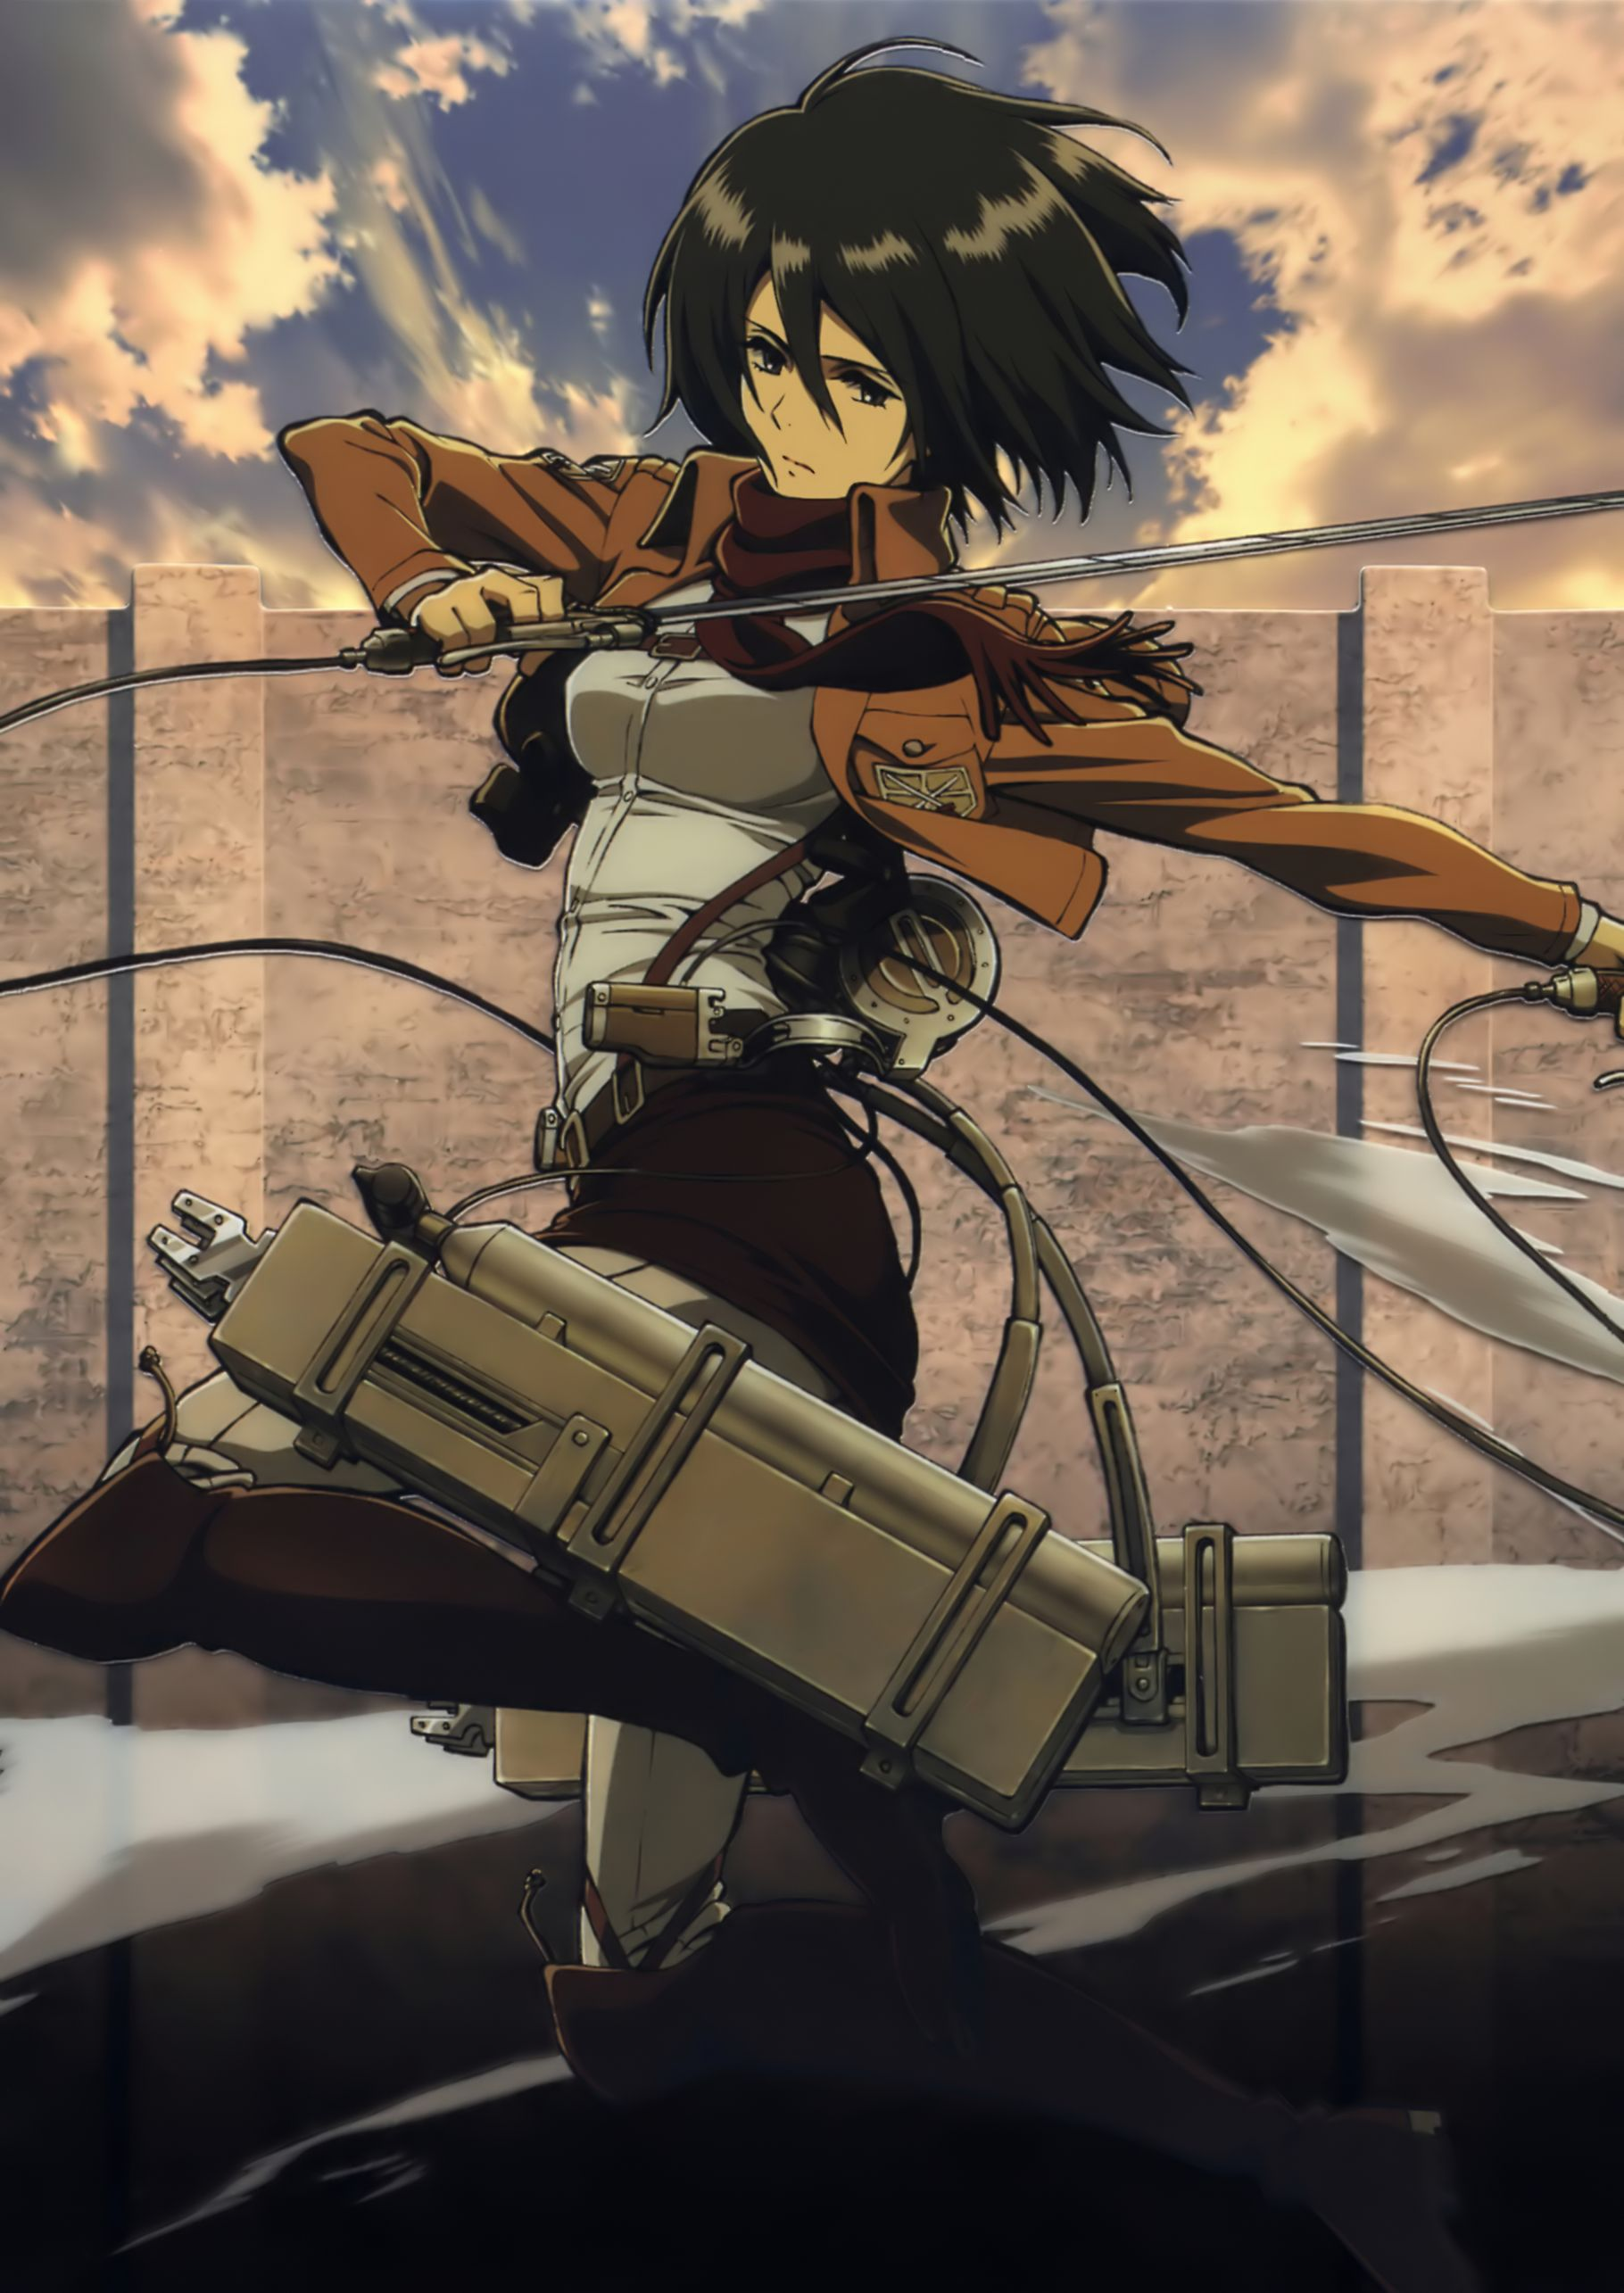 Would like to cosplay as Mikasa Ackerman for AnimeFest